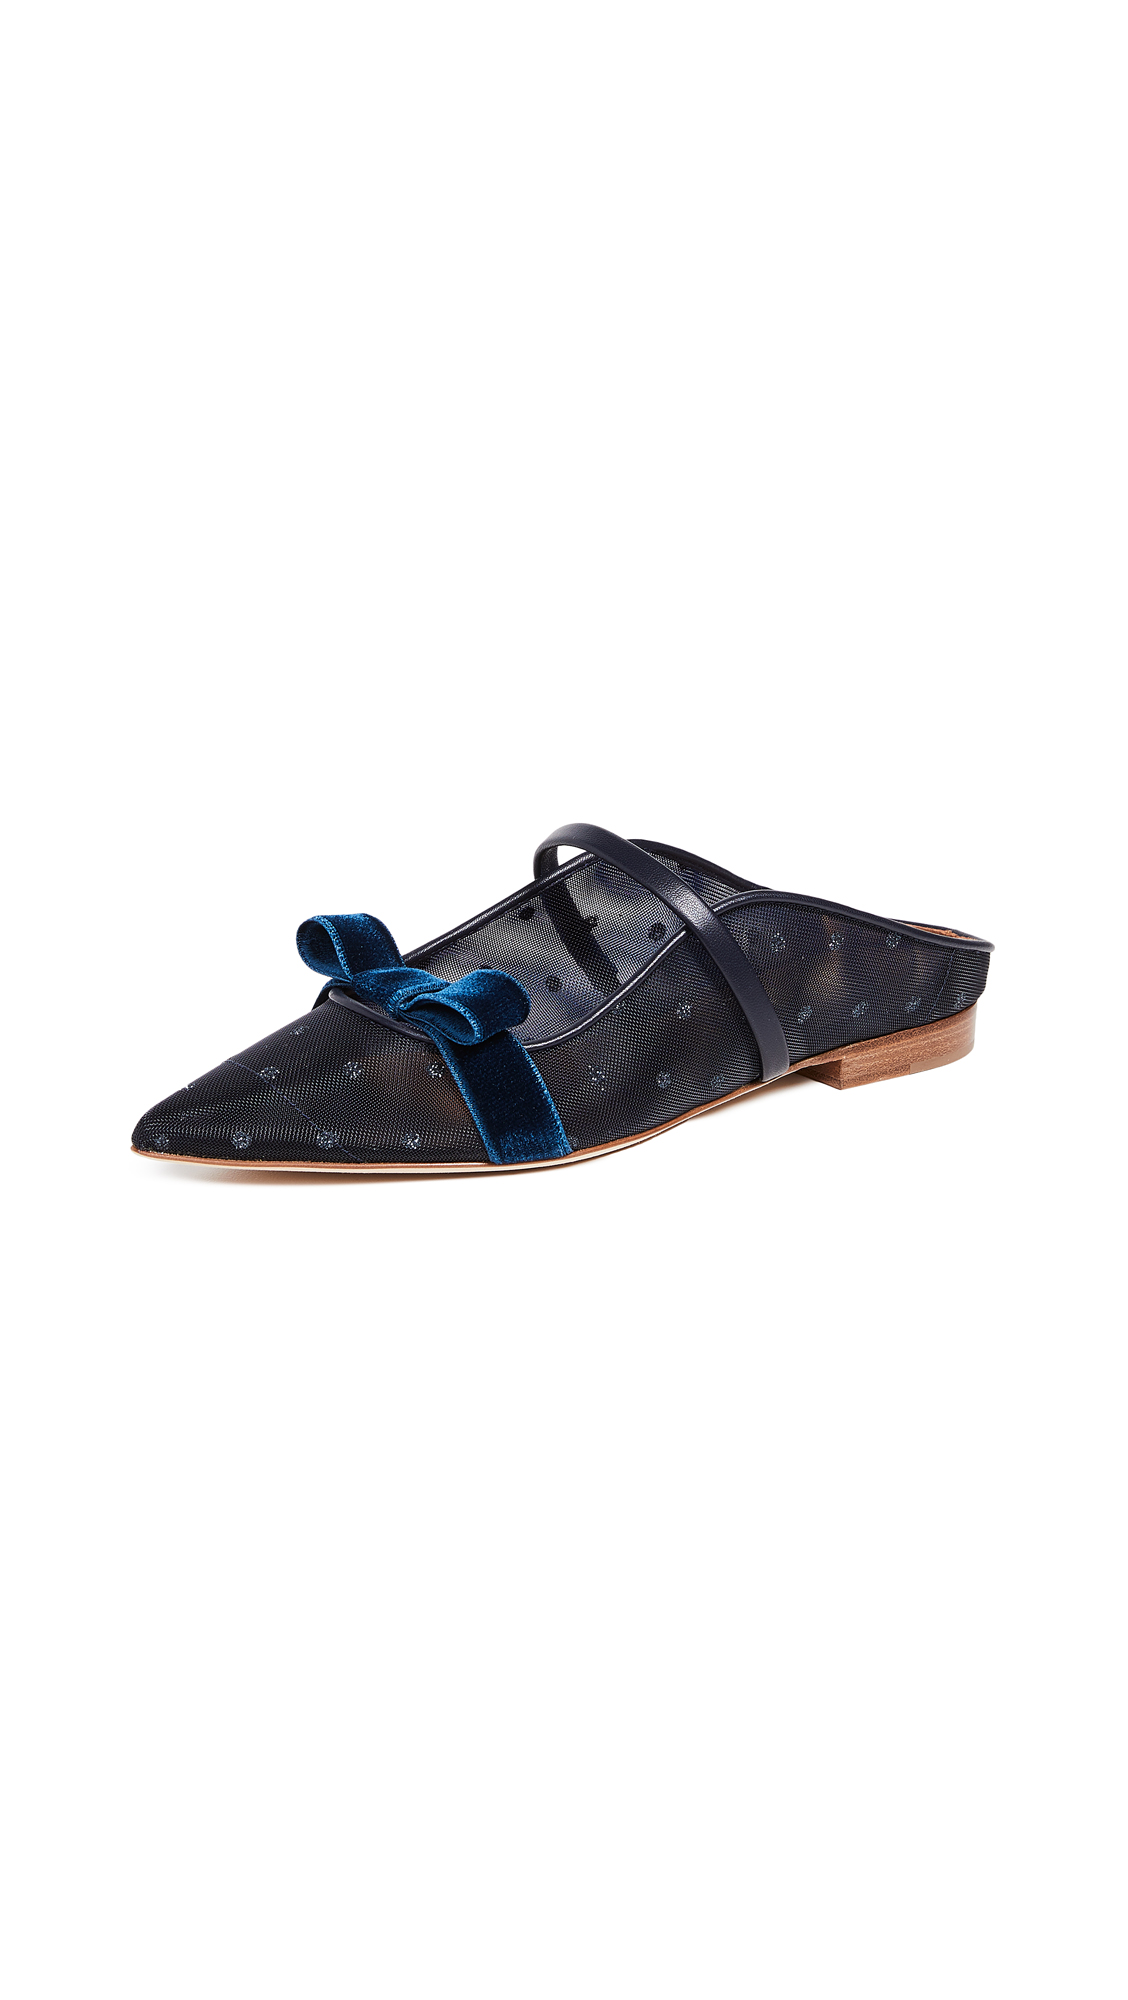 Malone Souliers by Roy Luwolt Marguerite Luwolt Mules - Blue/Midnight